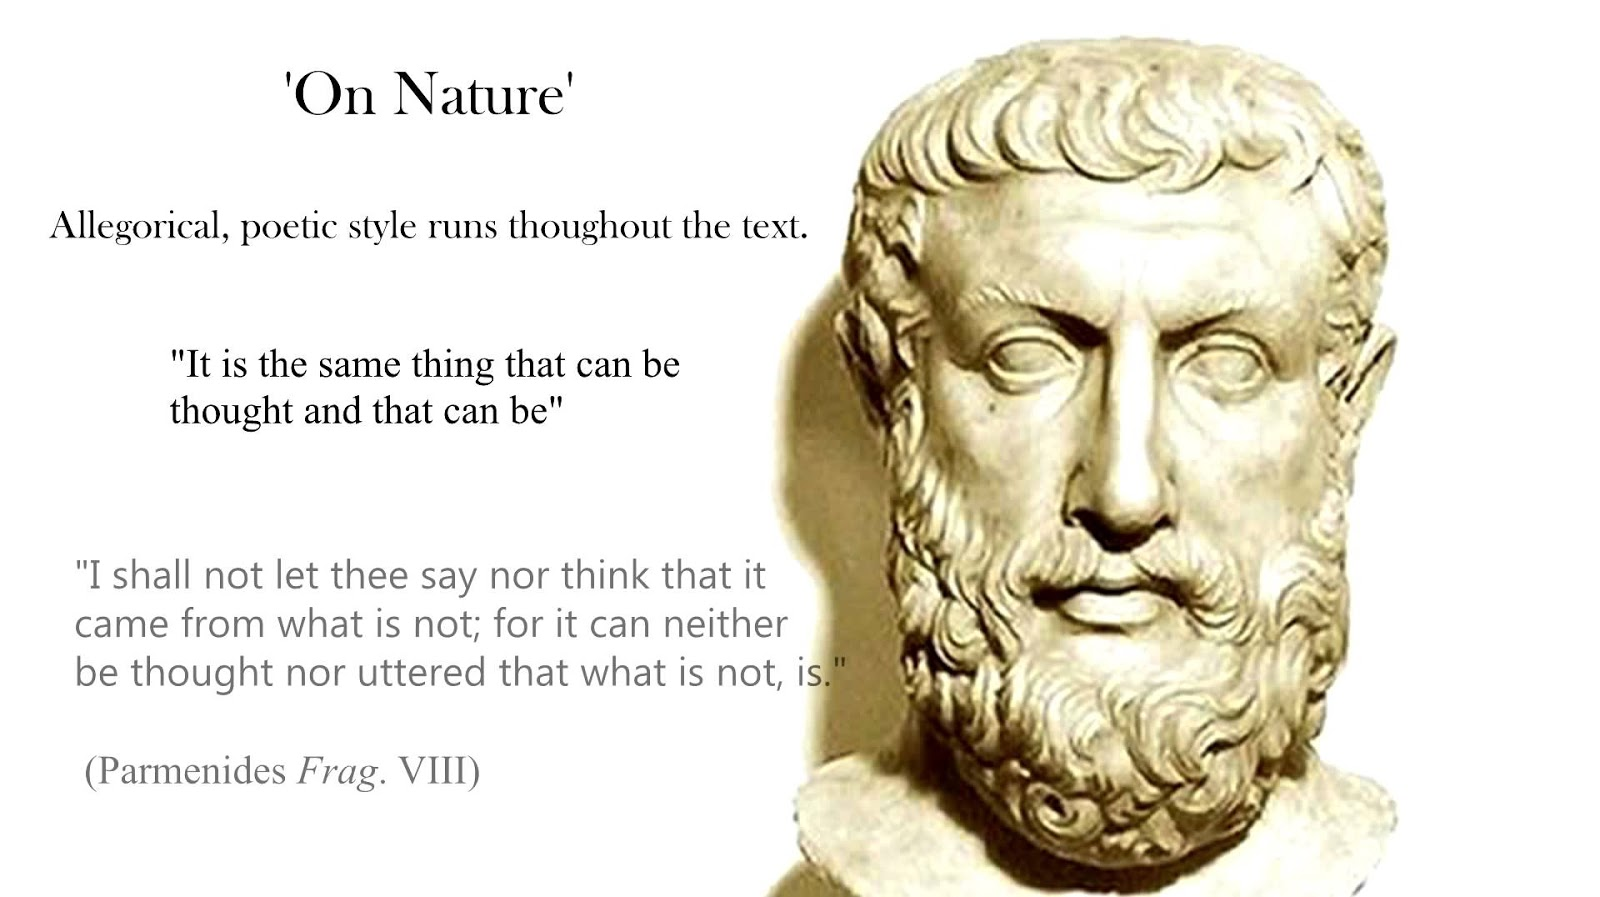 an overview of the philosophical world by parmenides Parmenides was a pre-socratic philosopher from elea  a world in which there  is change requires a combination of being and non-being, but.